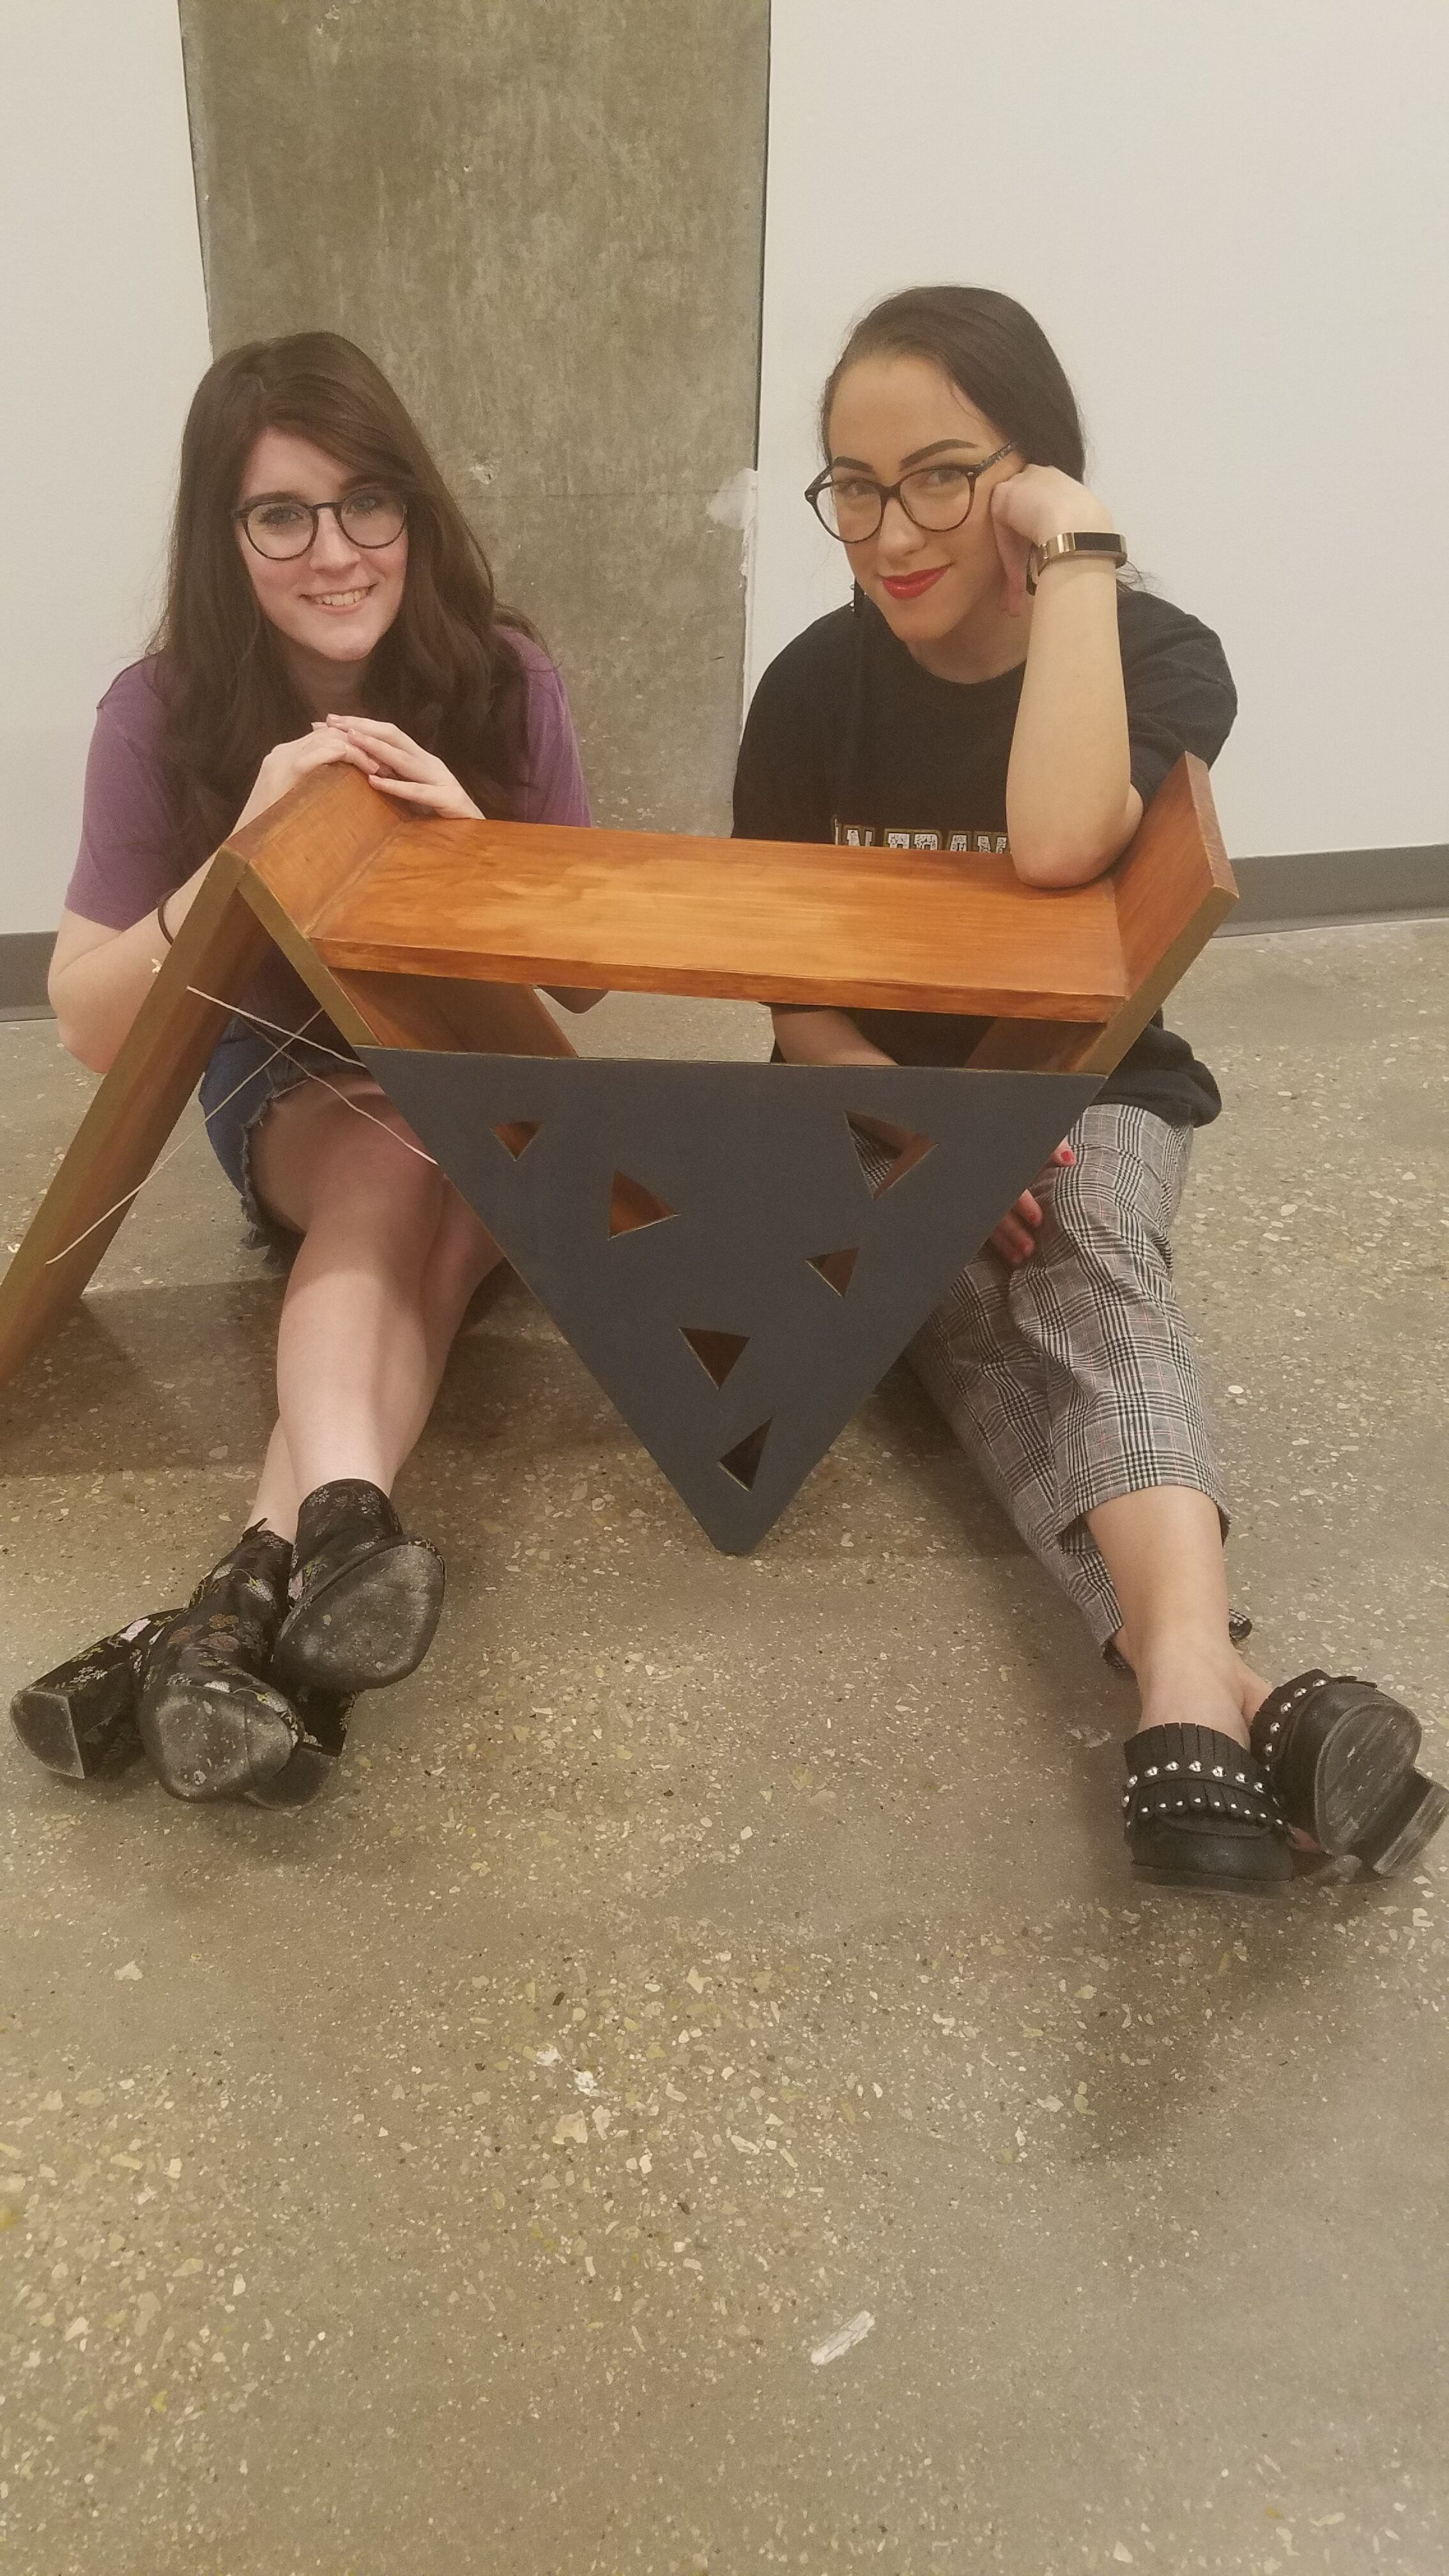 Abby Stephens and Josie King, Sculptures for a Cause